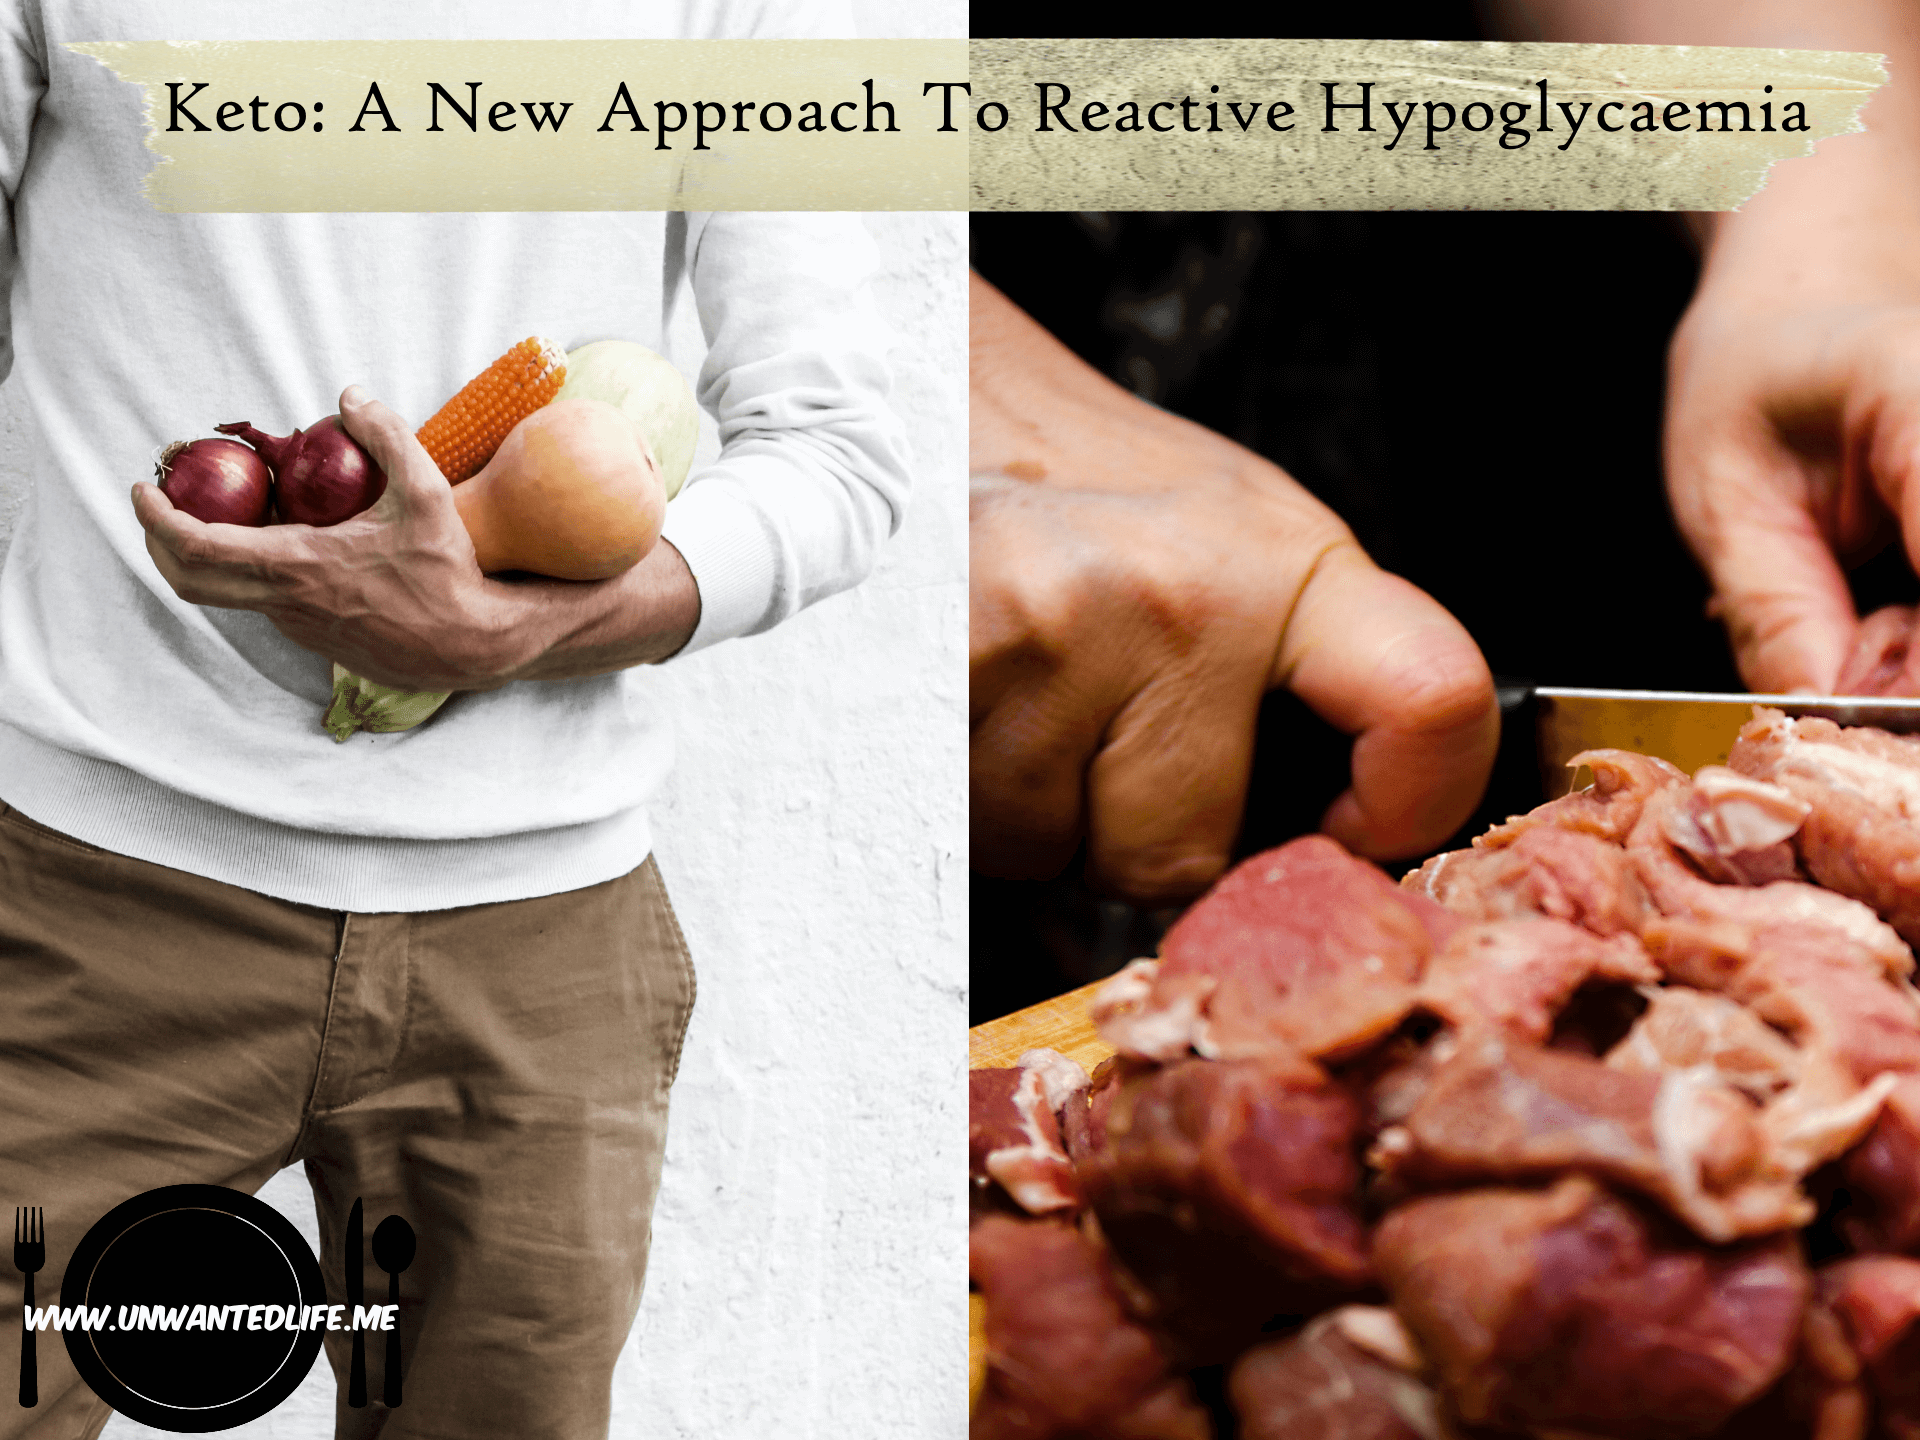 The image was split in two down the middle with the left image being of a white man holding vegetables and the left image being of a white man cutting up meat to represent - Keto: A New Approach To Reactive Hypoglycaemia